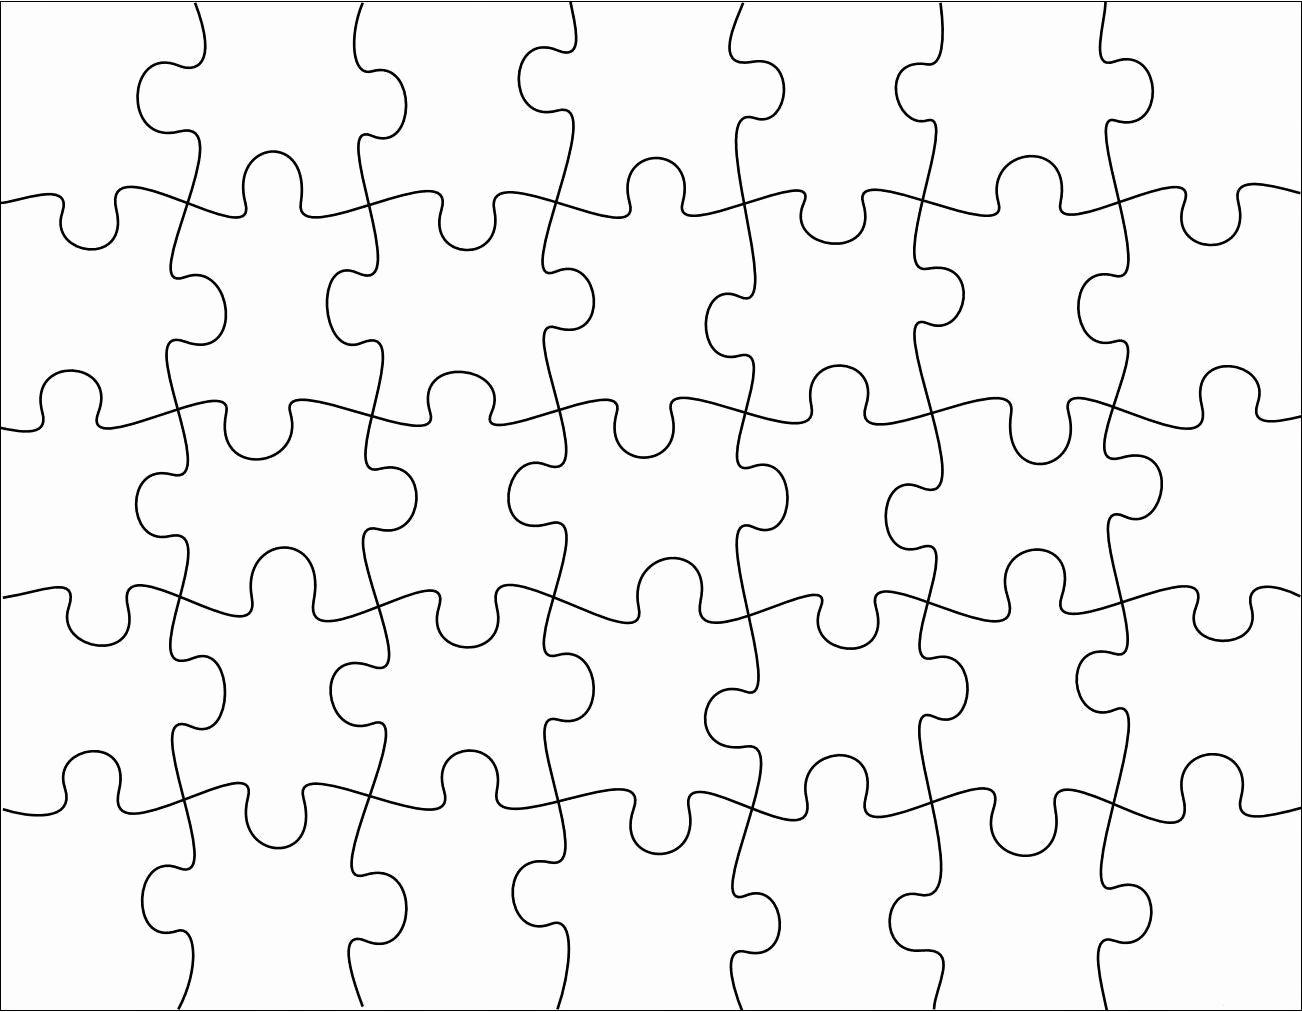 Blank Jigsaw Puzzle Template Fresh Jigsaw Template Free Downloads G Tpearl